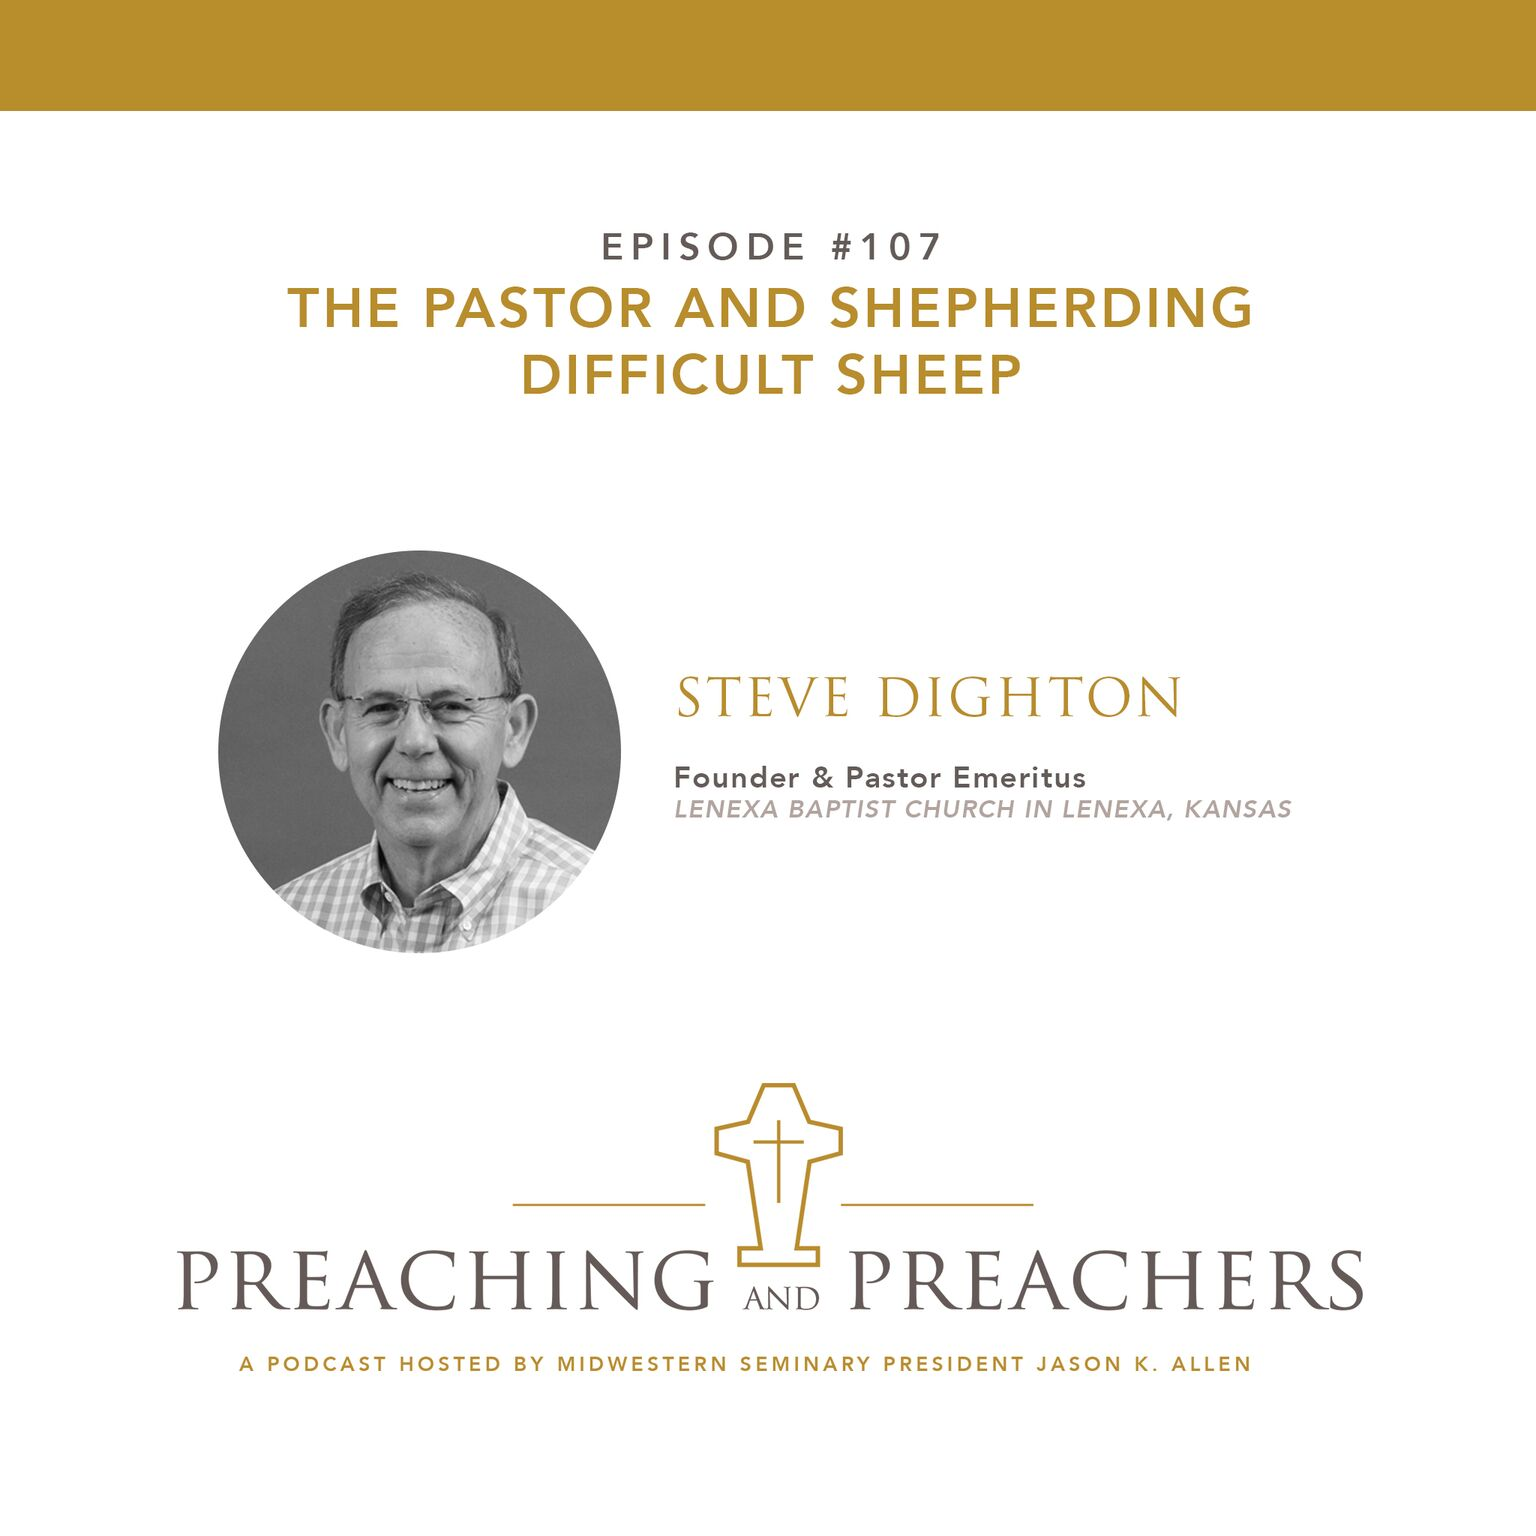 Sermon Feed My Sheep: Episode 107: The Pastor And Shepherding Difficult Sheep